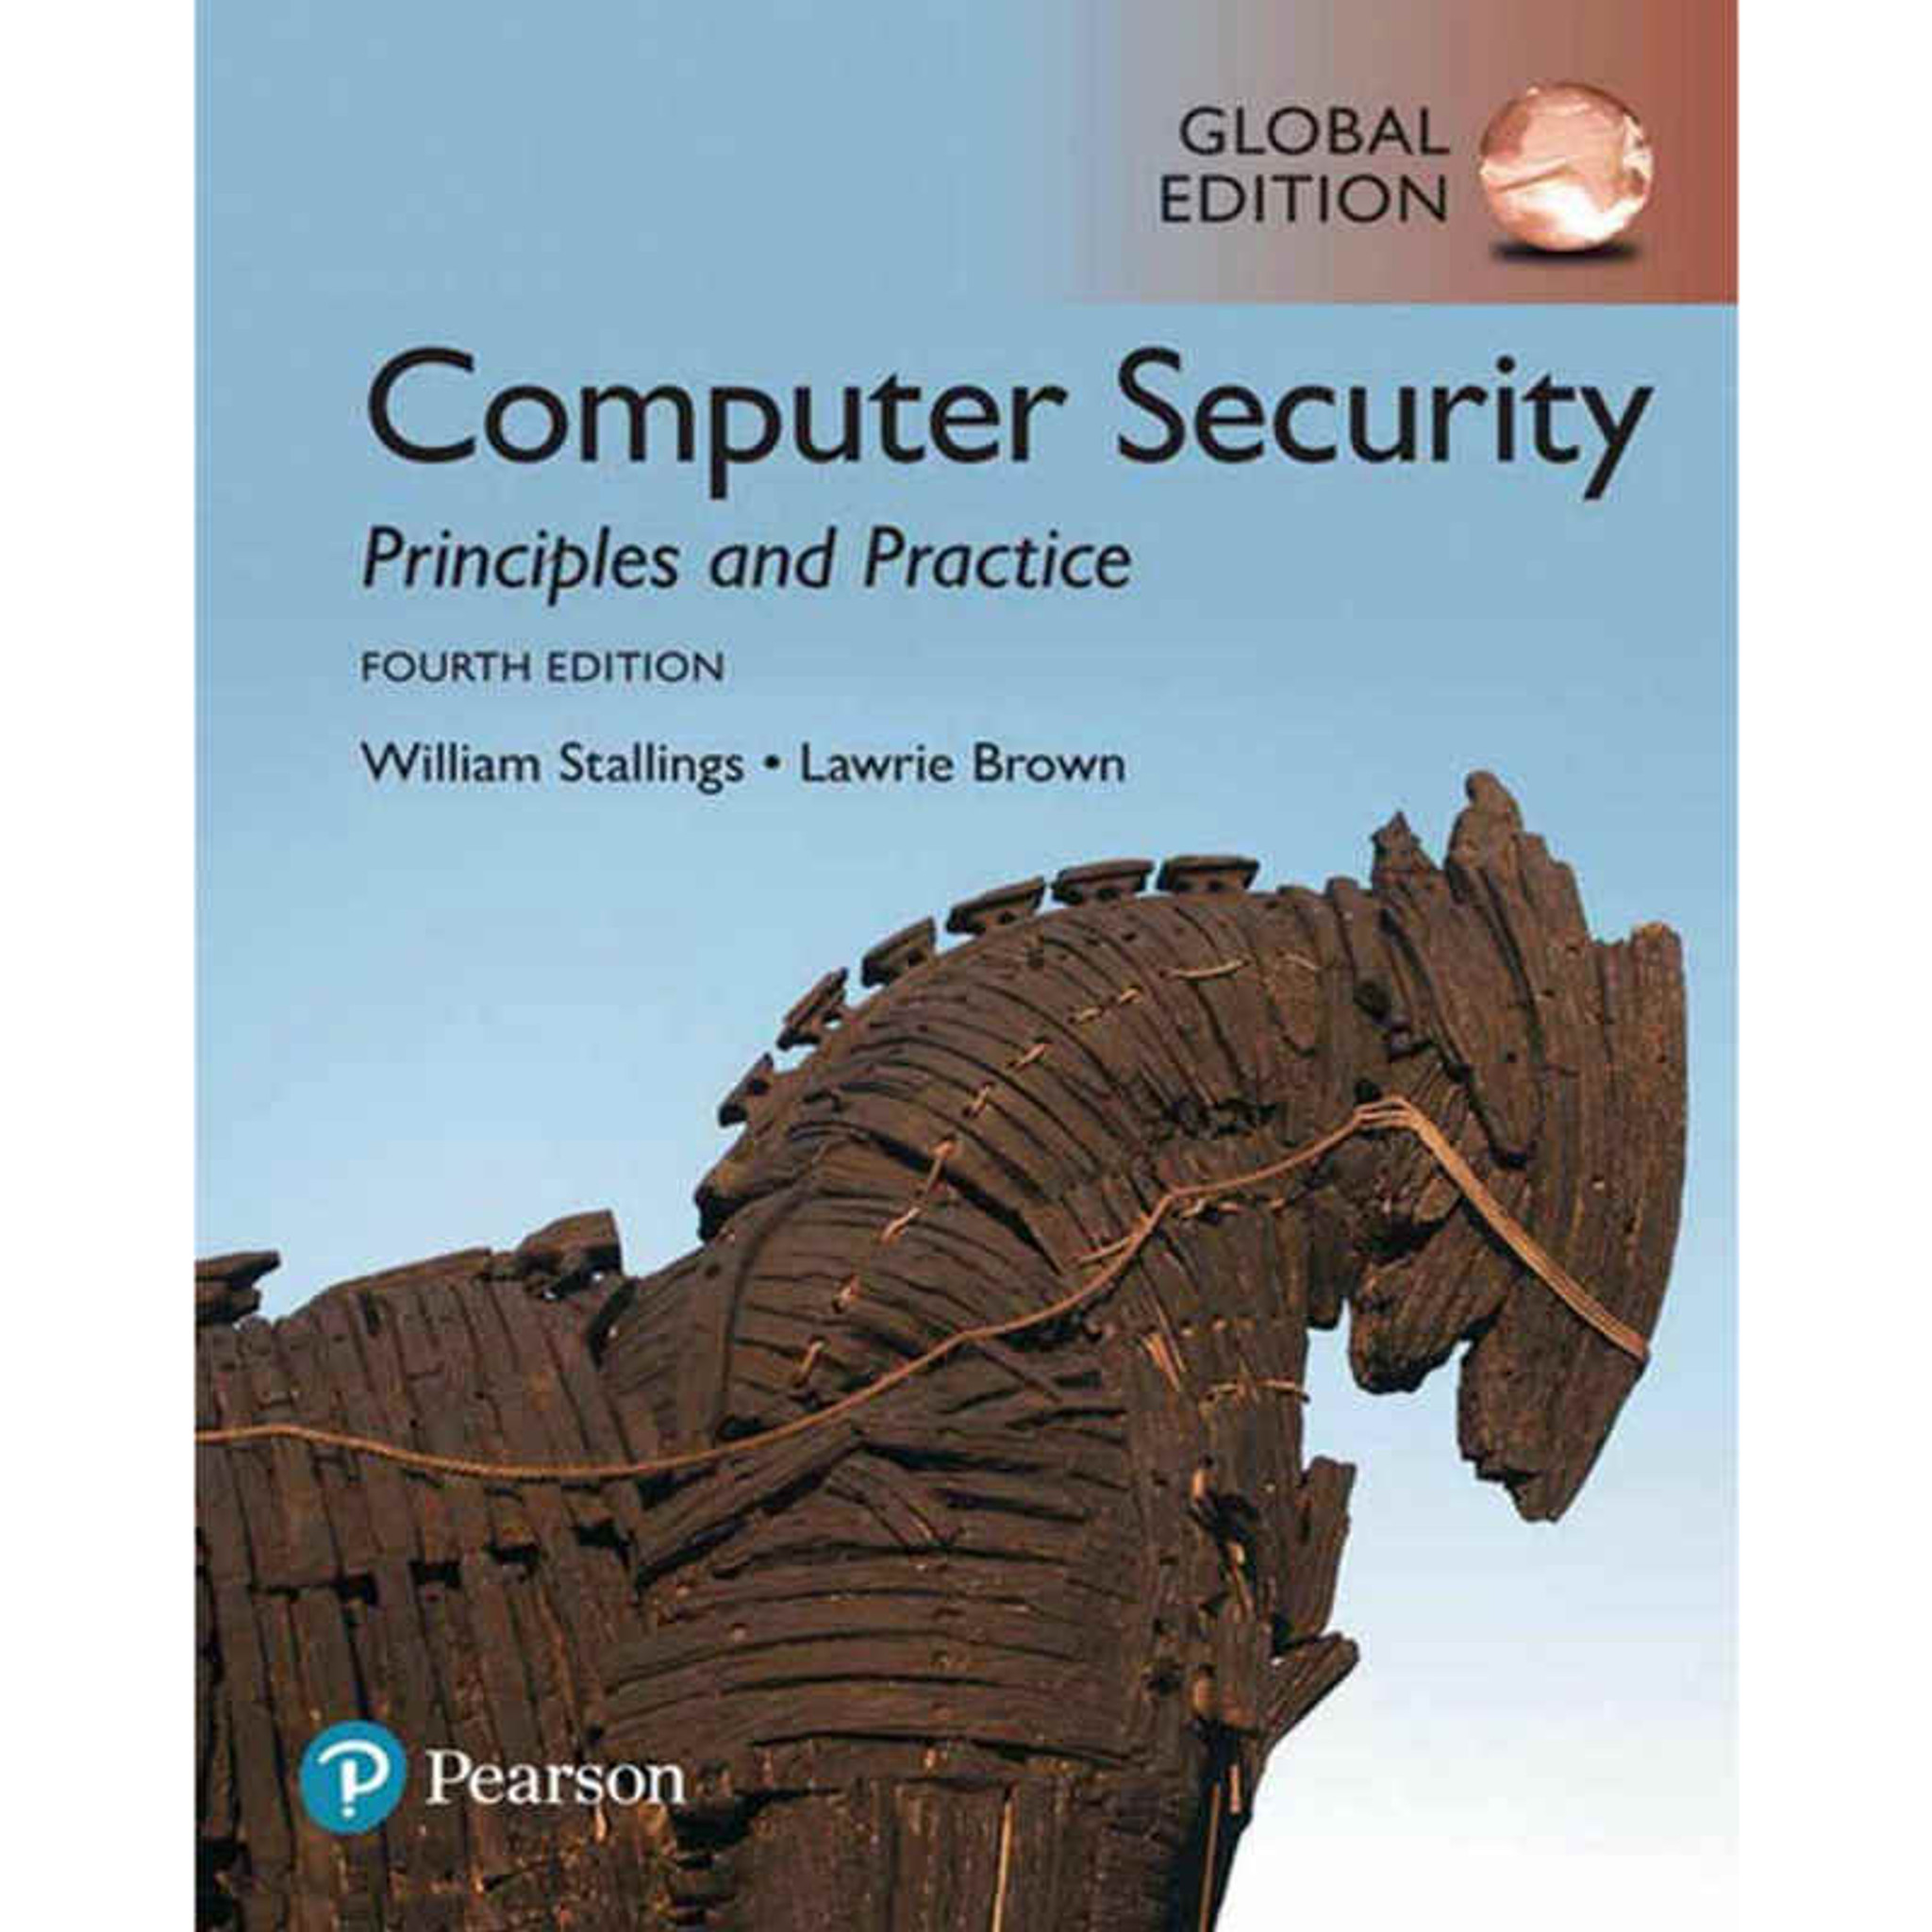 Computer Security Principles And Practice 4th Edition William Stallings And Lawrie Brown 9780134794105